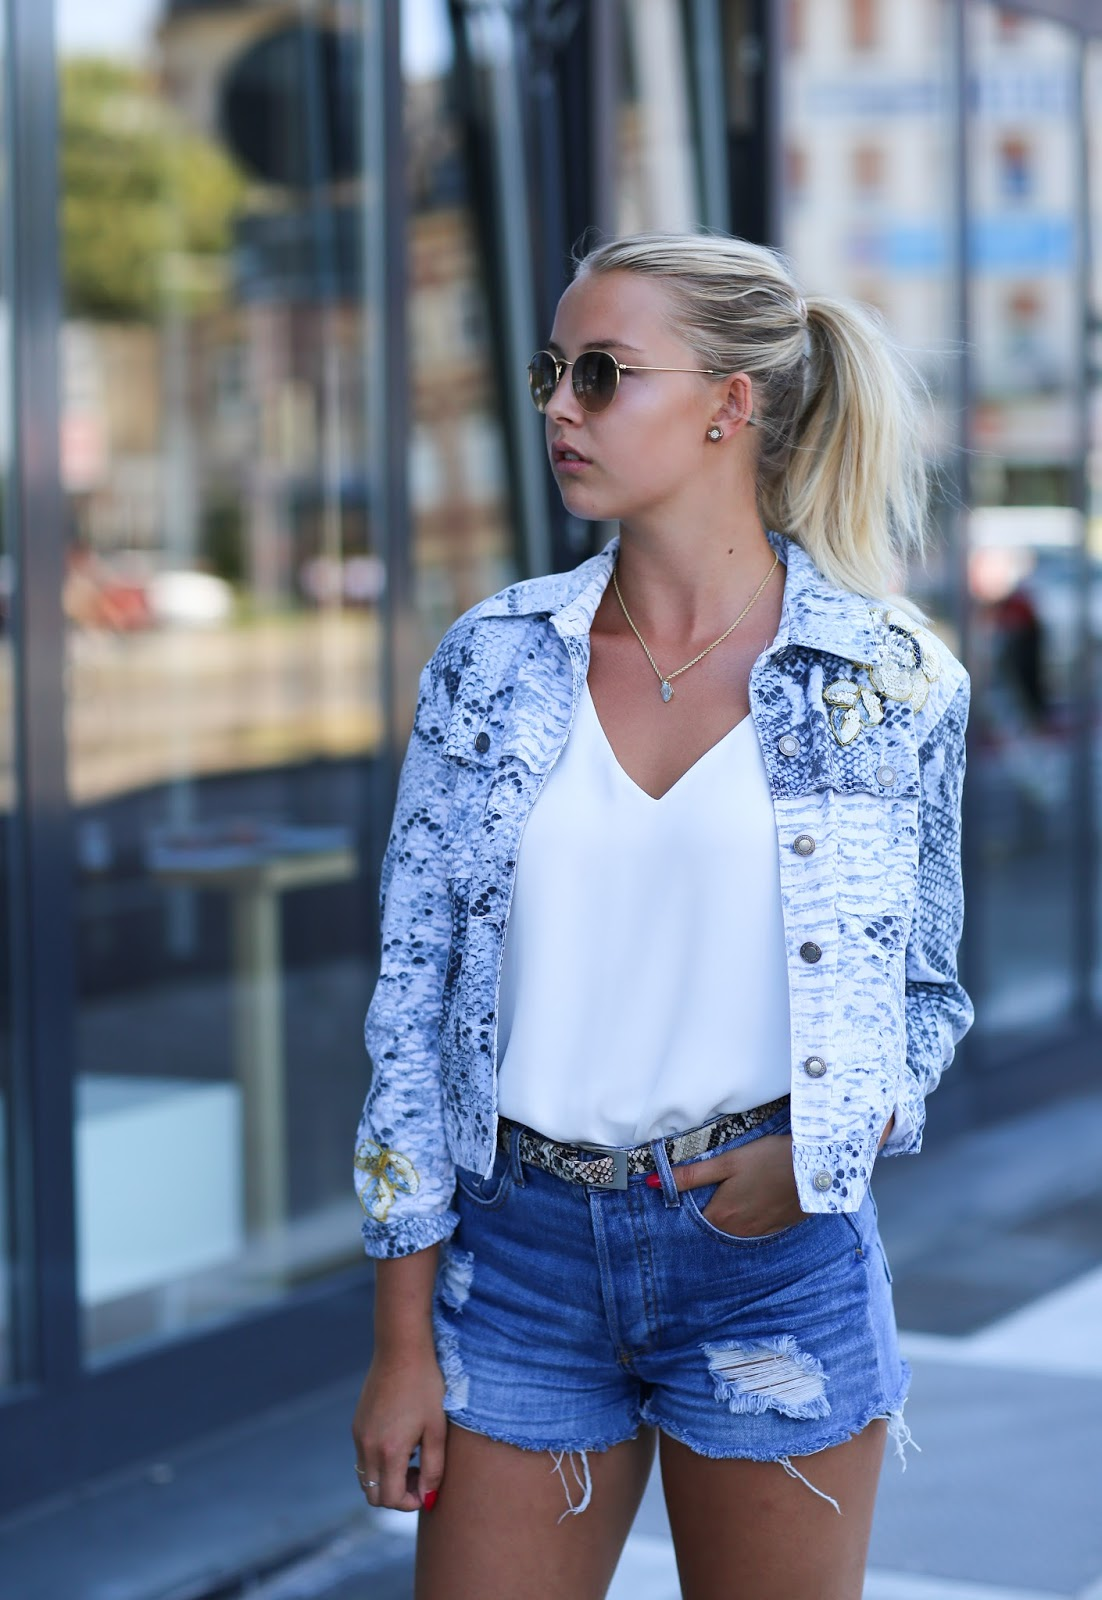 BLUE JEANS – SUMMER IN THE CITY